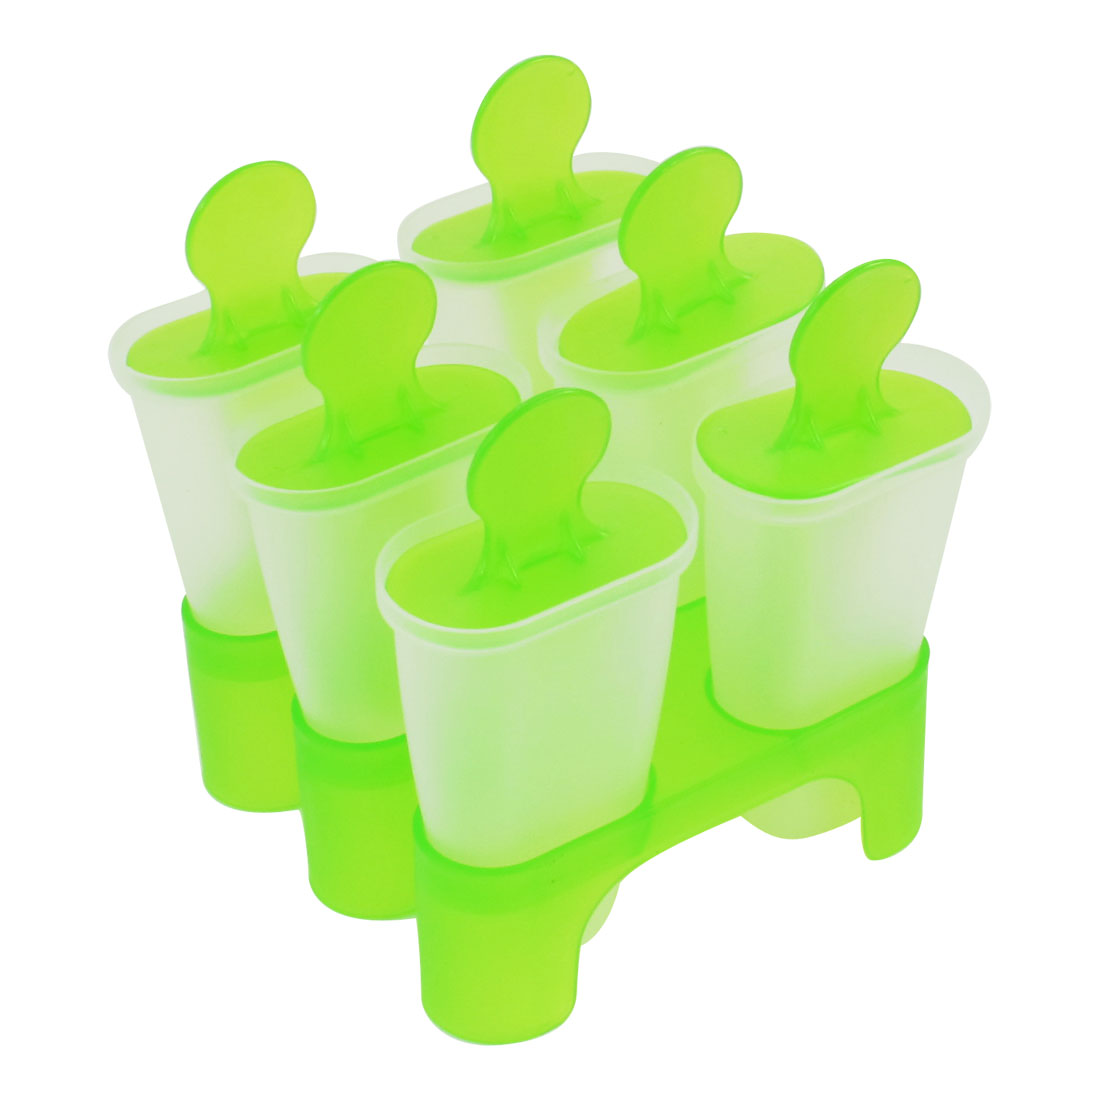 Apple Green Clear 6 in 1 Plastic Portable DIY Ice Cream Popsicle Making Moulds